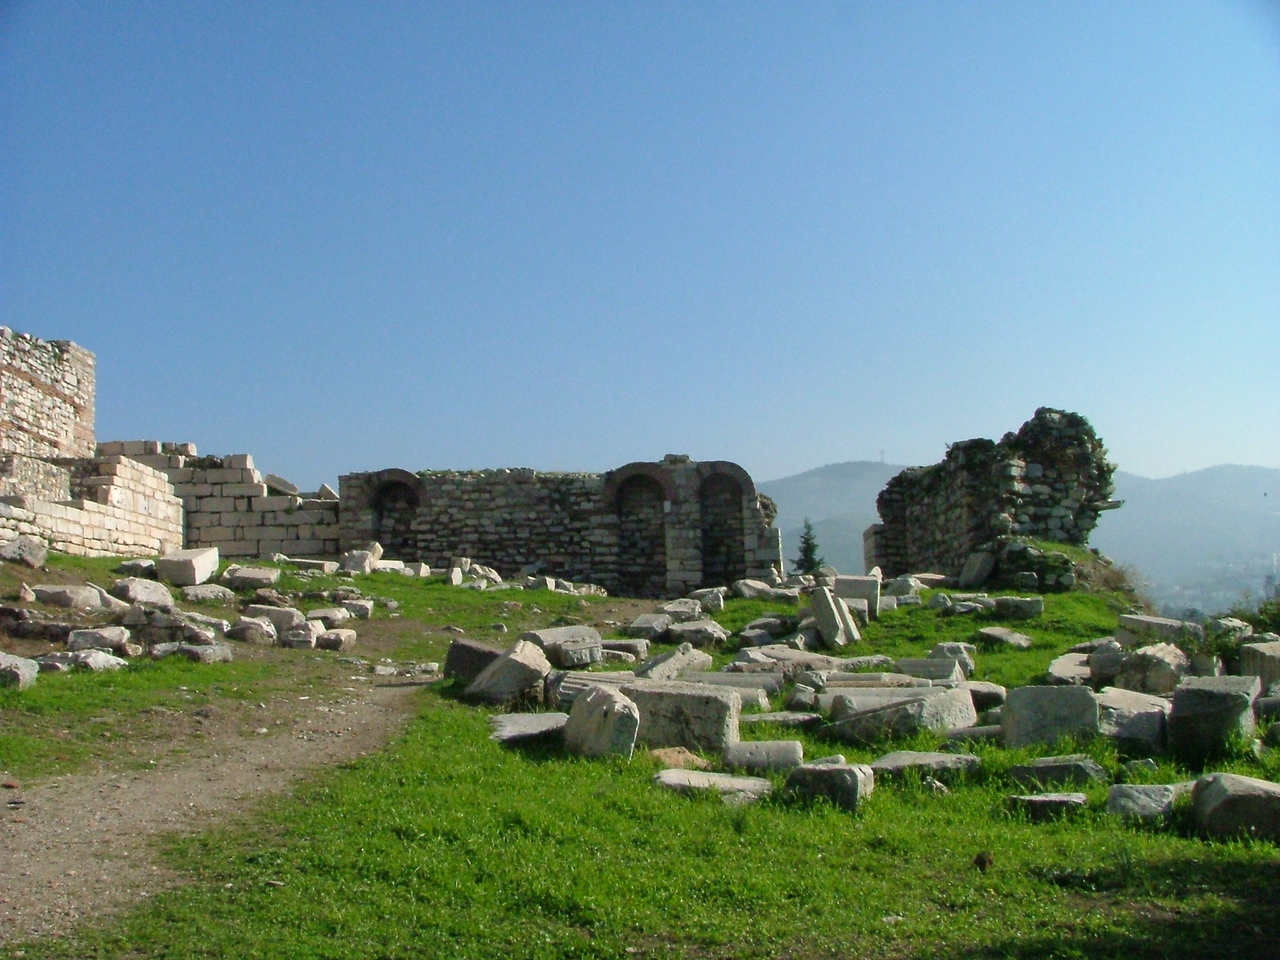 Basilica of St. John - Built by the Emperor Justinian over the tomb of St. John the Apostle